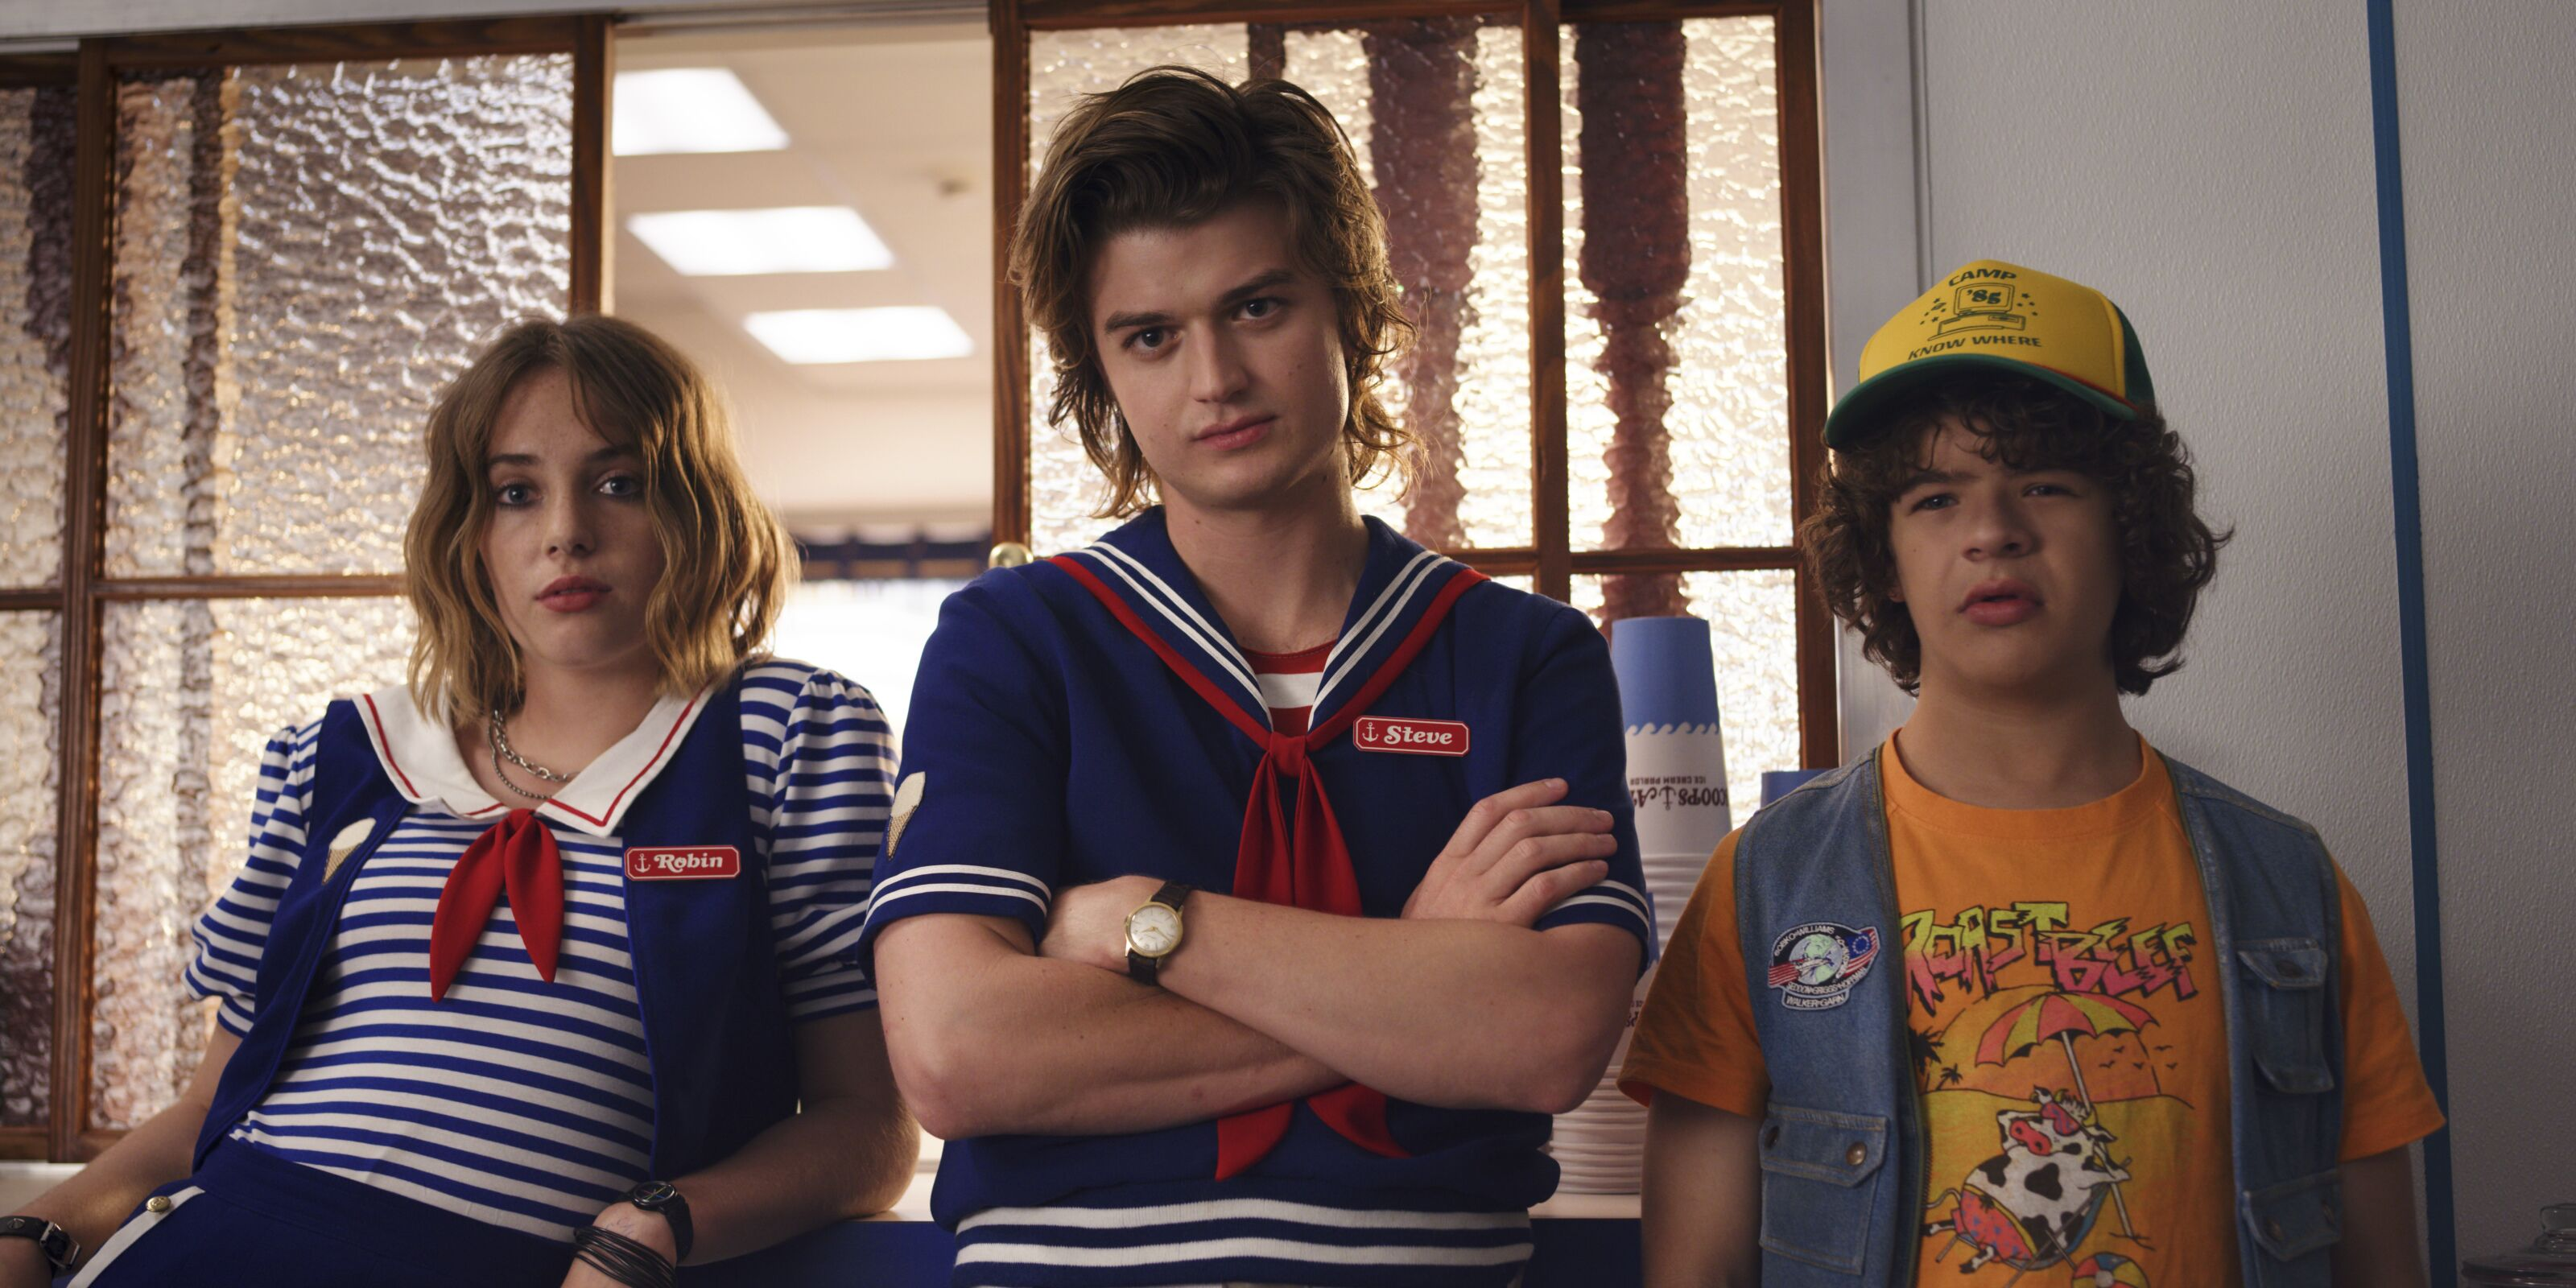 Joe Keery (Steve) cut his beautiful hair and Stranger Things fans are in mourning